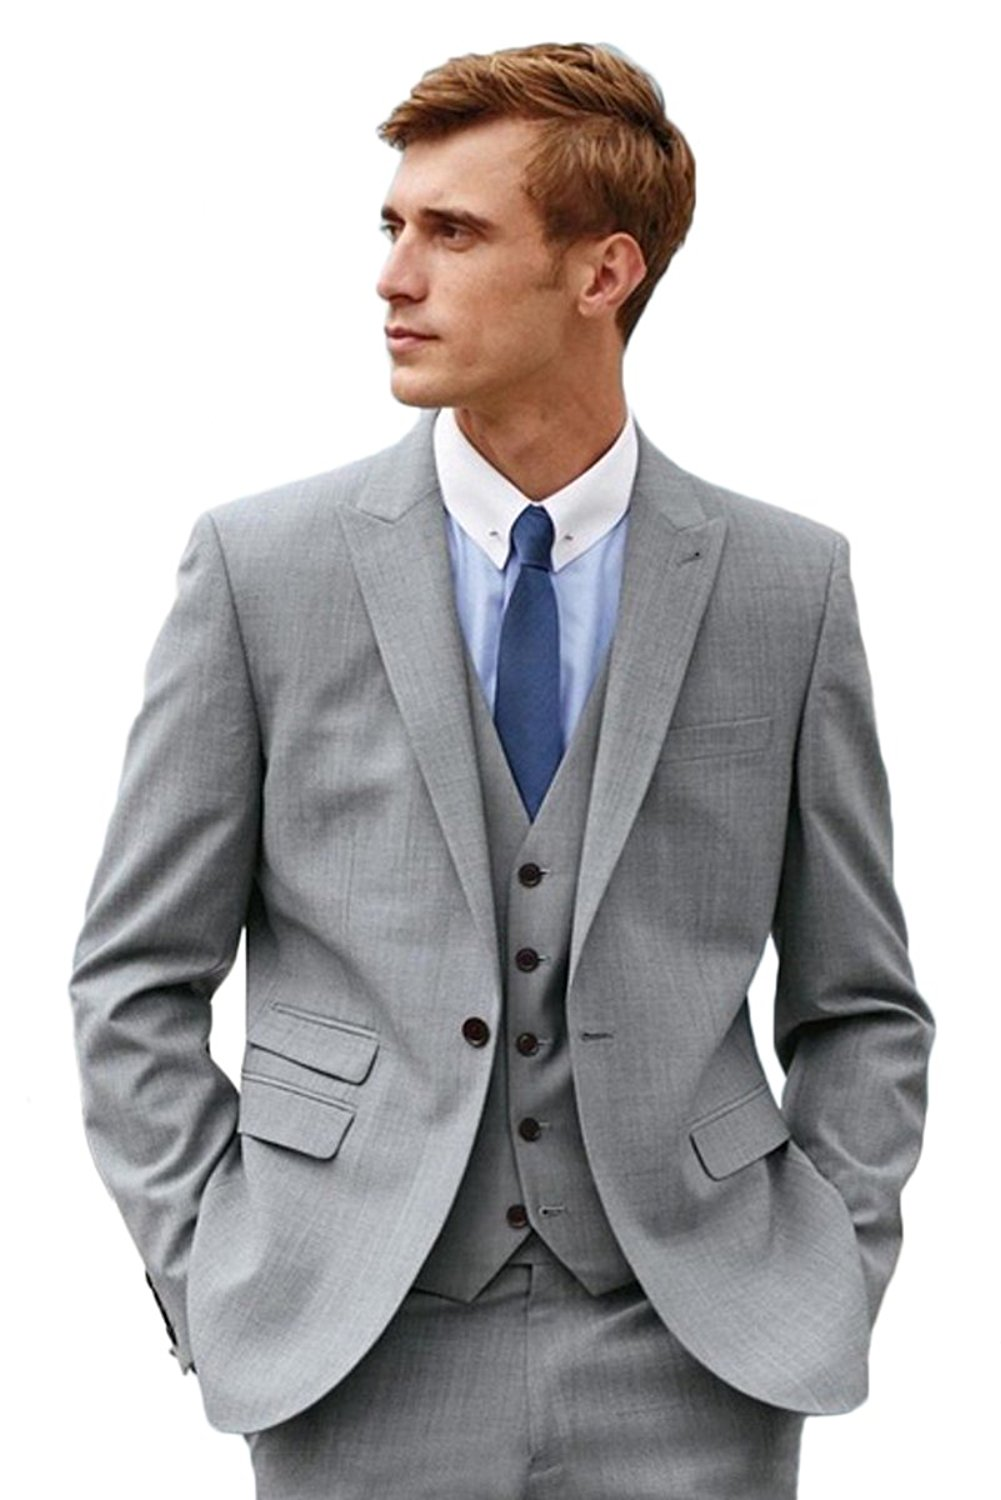 a5e4fc400f Get Quotations · Mens One Button Formal Grey 3 Piece Suits Slim Fit Wedding  Groom Tuxedo